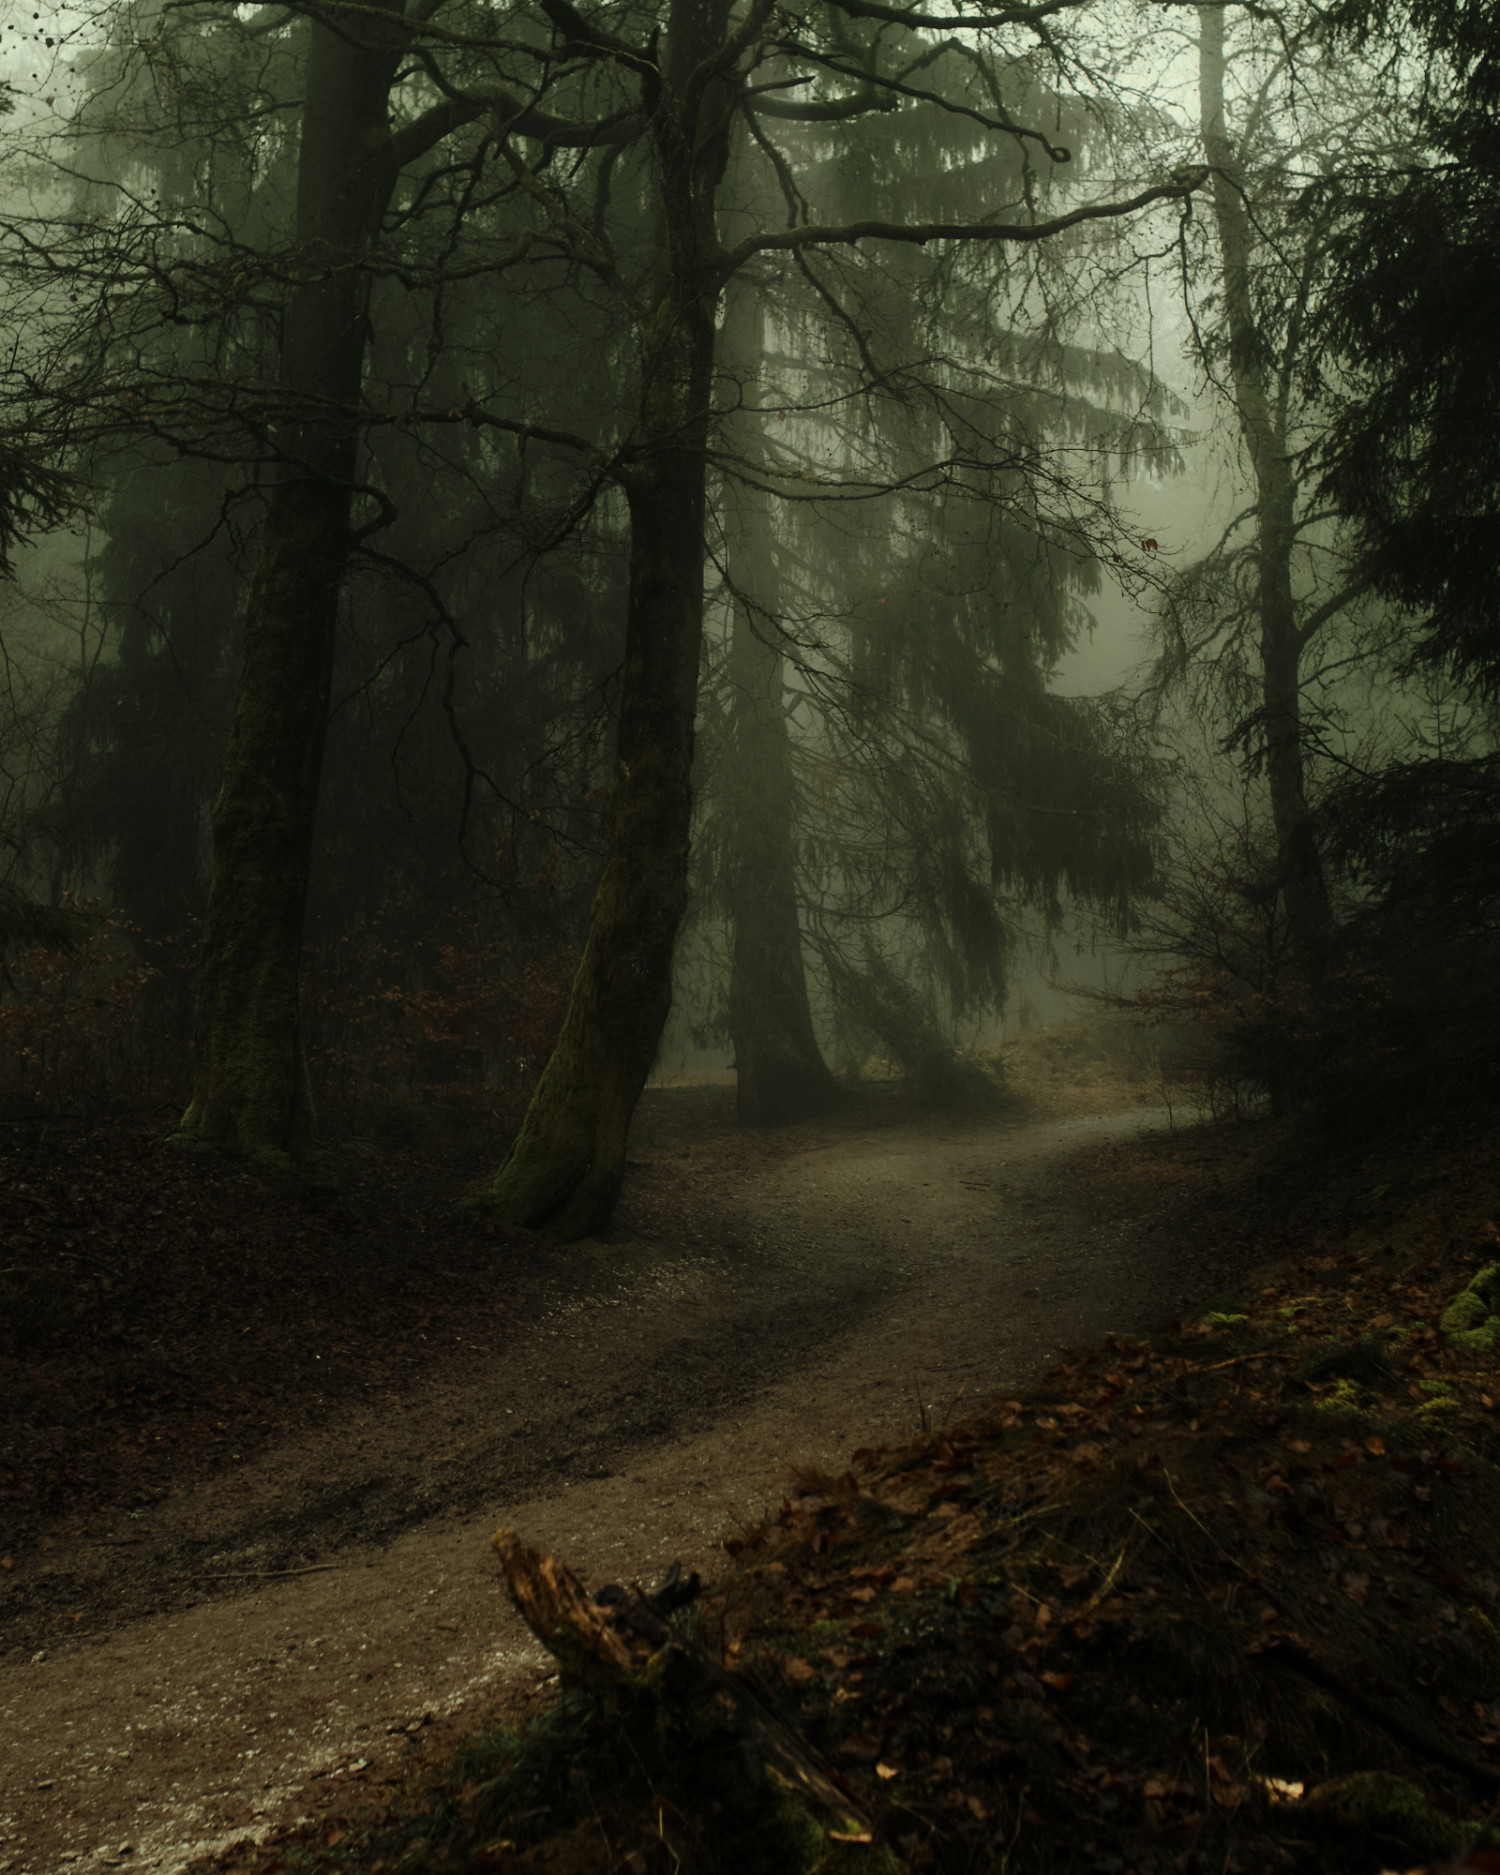 Cover picture of product Foggy Forrest Fotoprint 40 x 60 cm